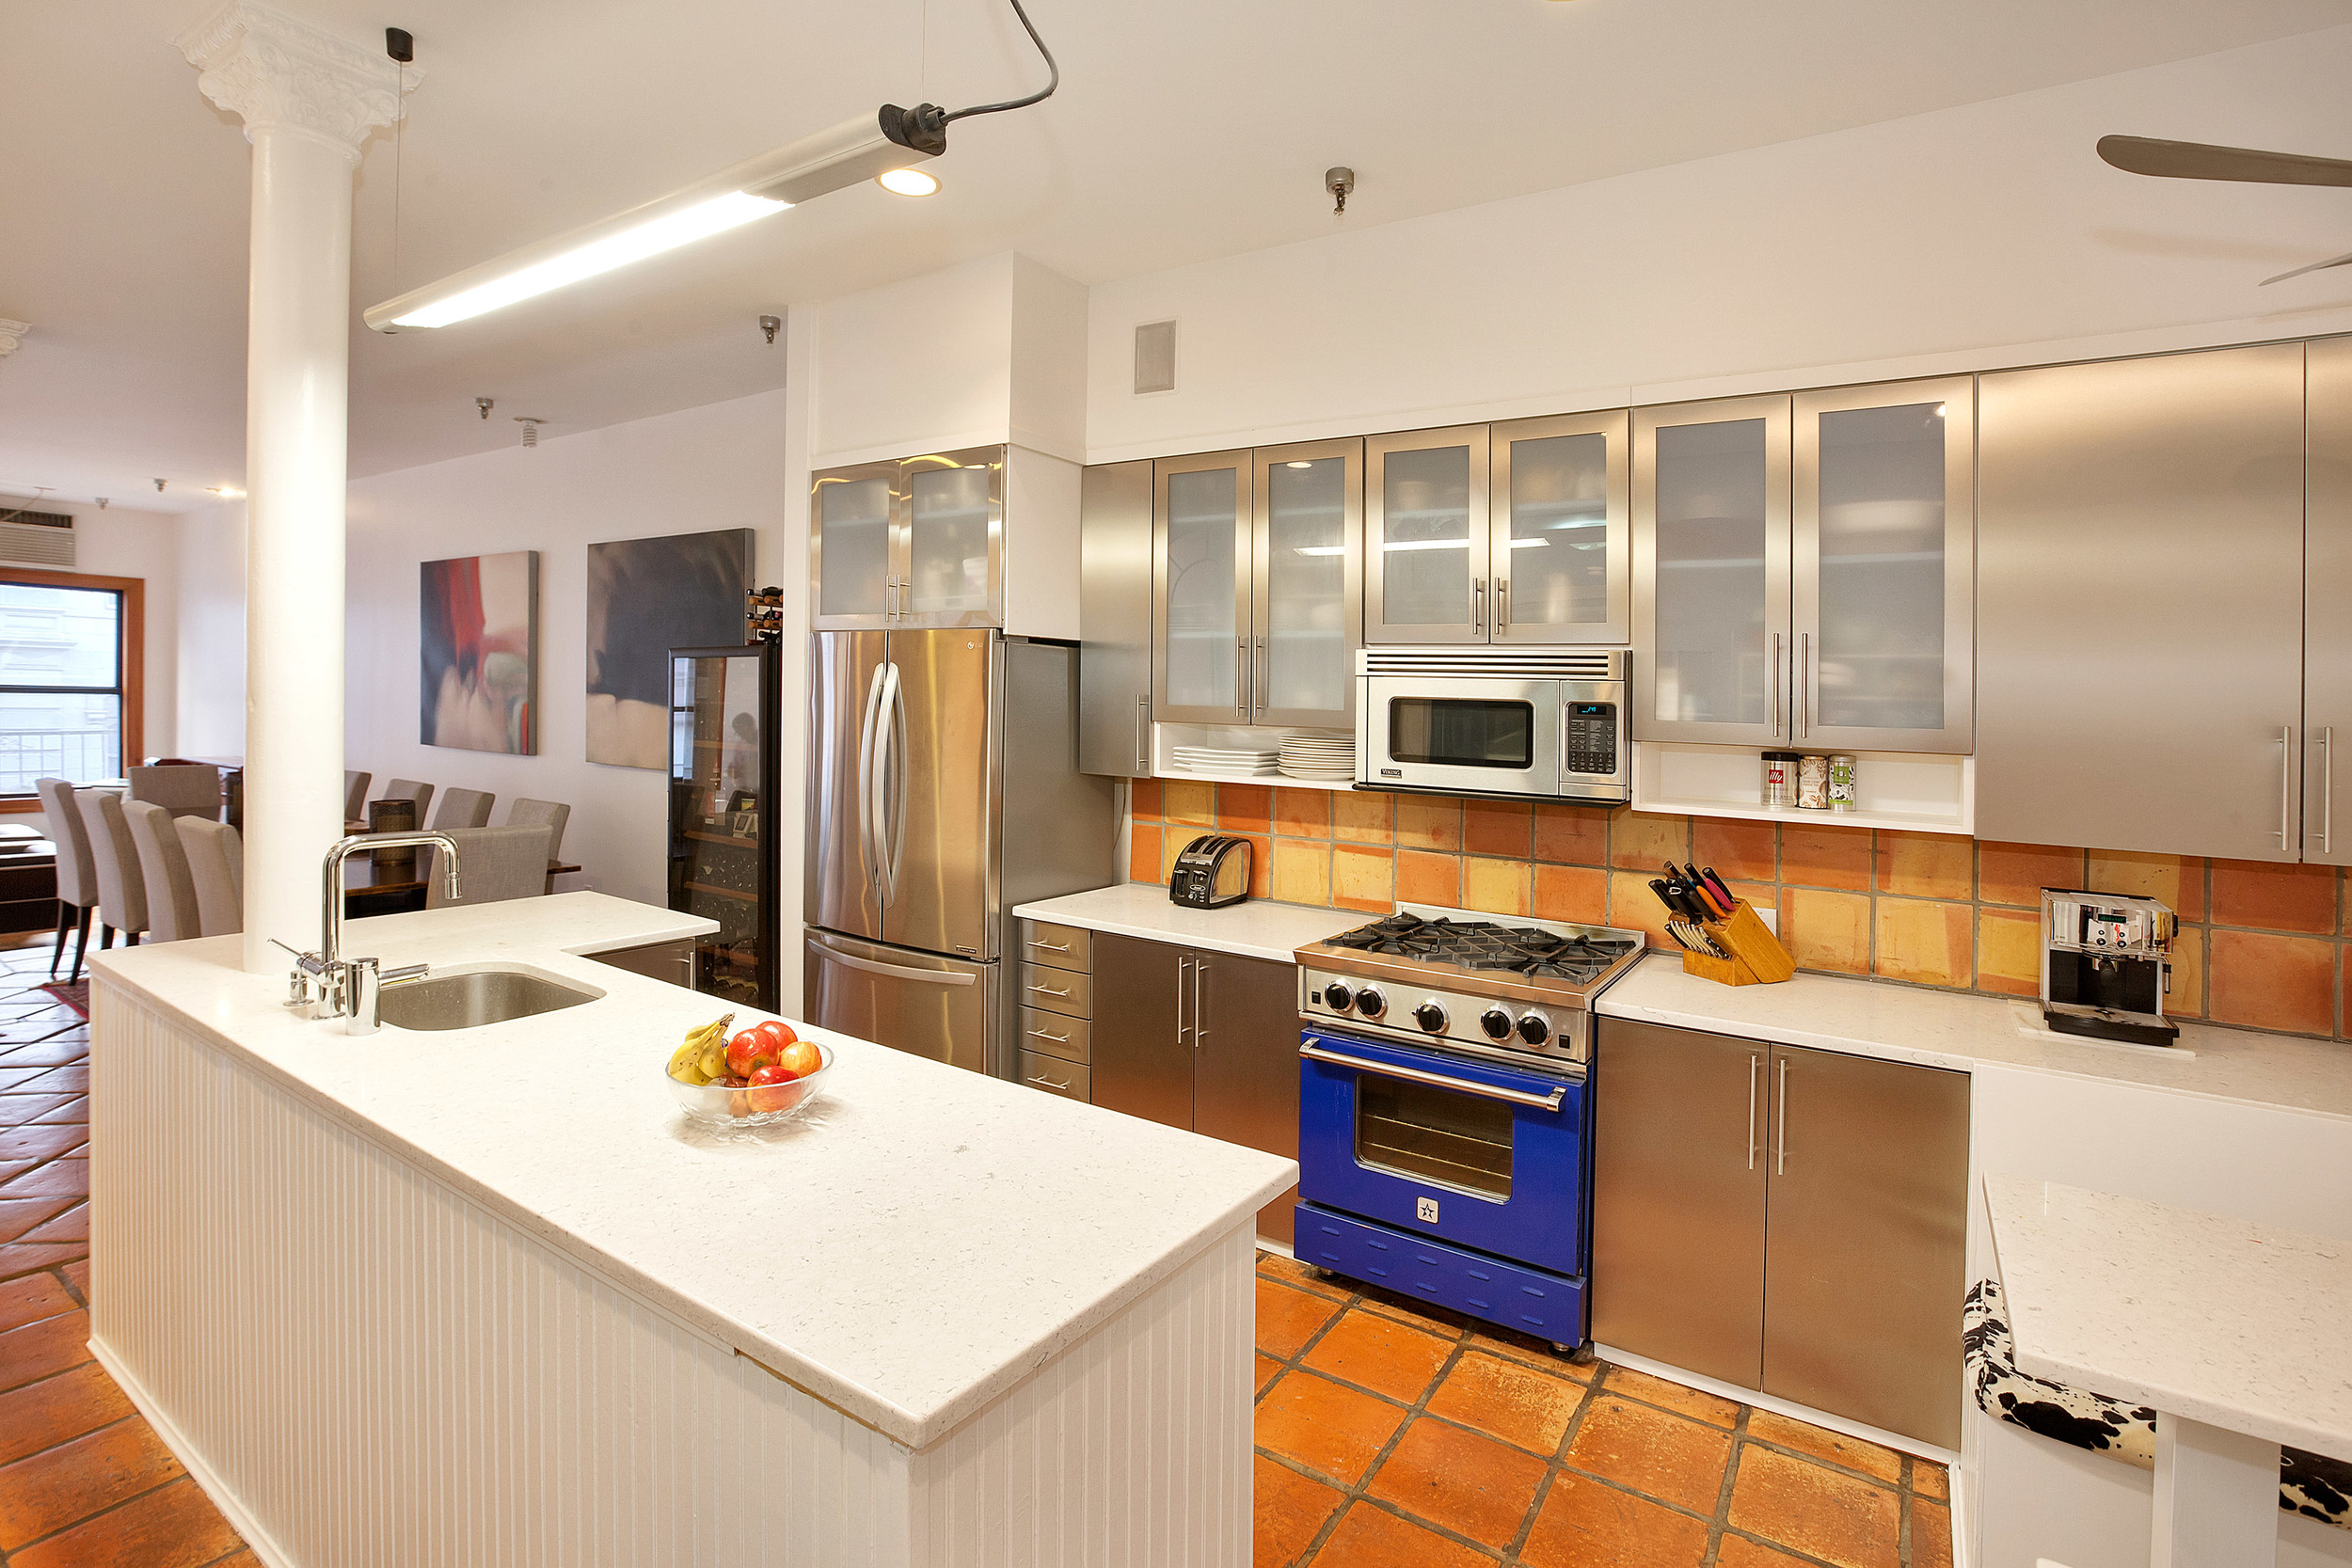 18East18thStreet4W_Dylan_Hildreth-Hoffman_DouglasElliman_Photography_33613814_high_res.jpg